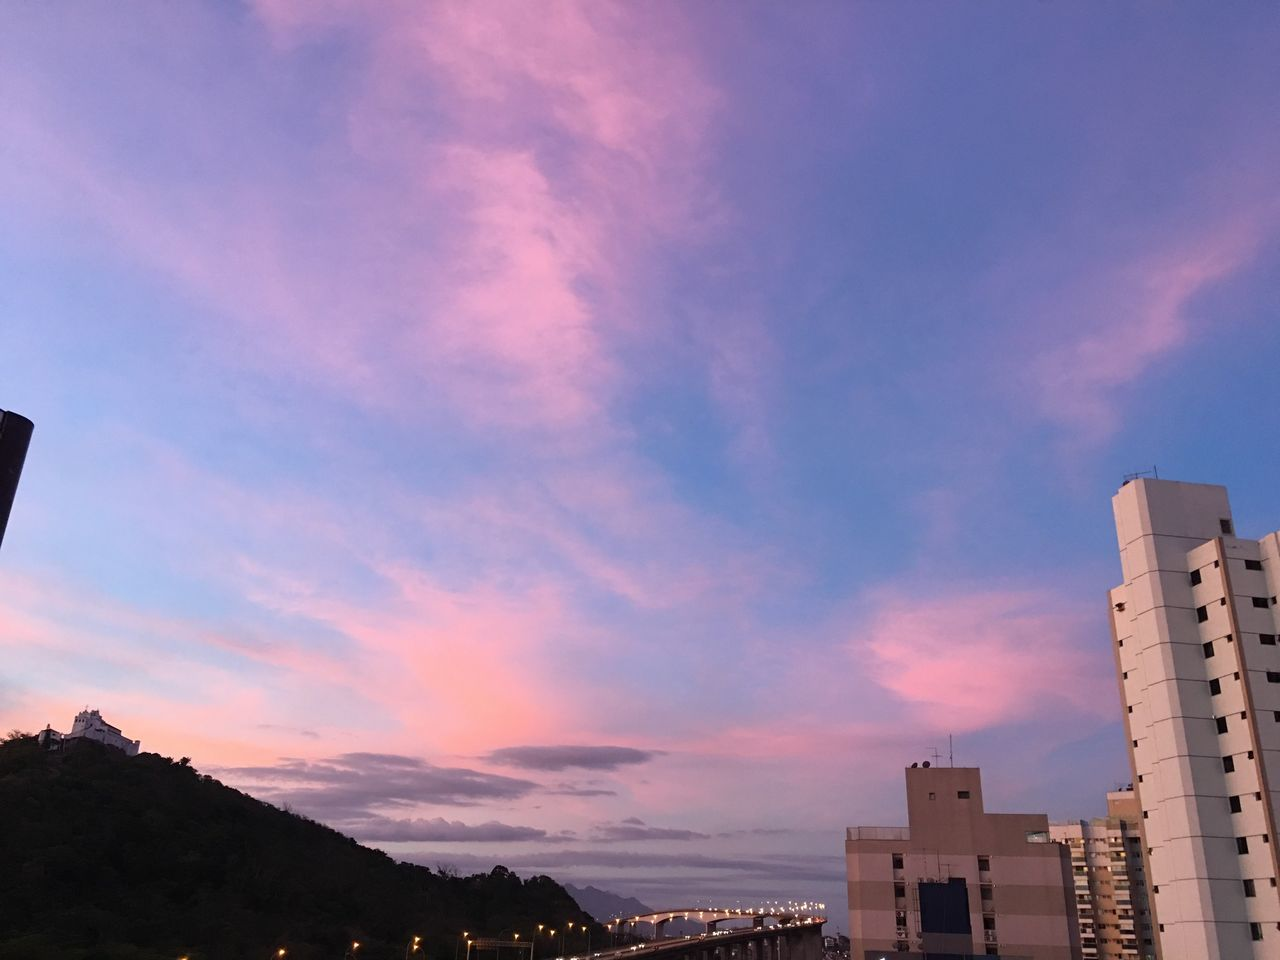 architecture, building exterior, built structure, sky, cloud - sky, sunset, city, low angle view, no people, outdoors, nature, skyscraper, cityscape, day